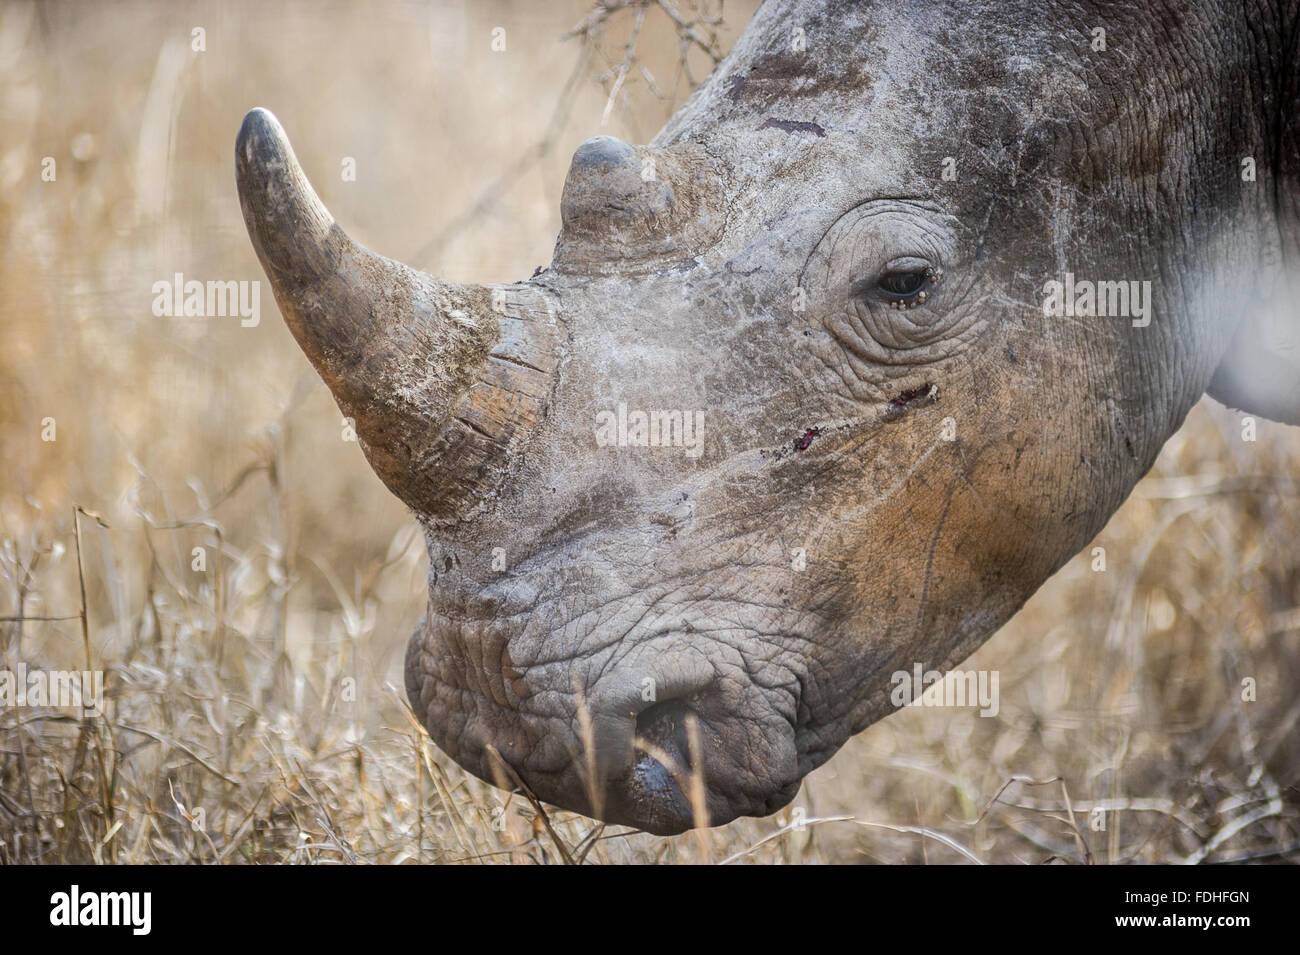 Rhinoceros (Rhinocerotidae) at Hlane Royal Game Preserve, Swaziland, Africa. Stock Photo